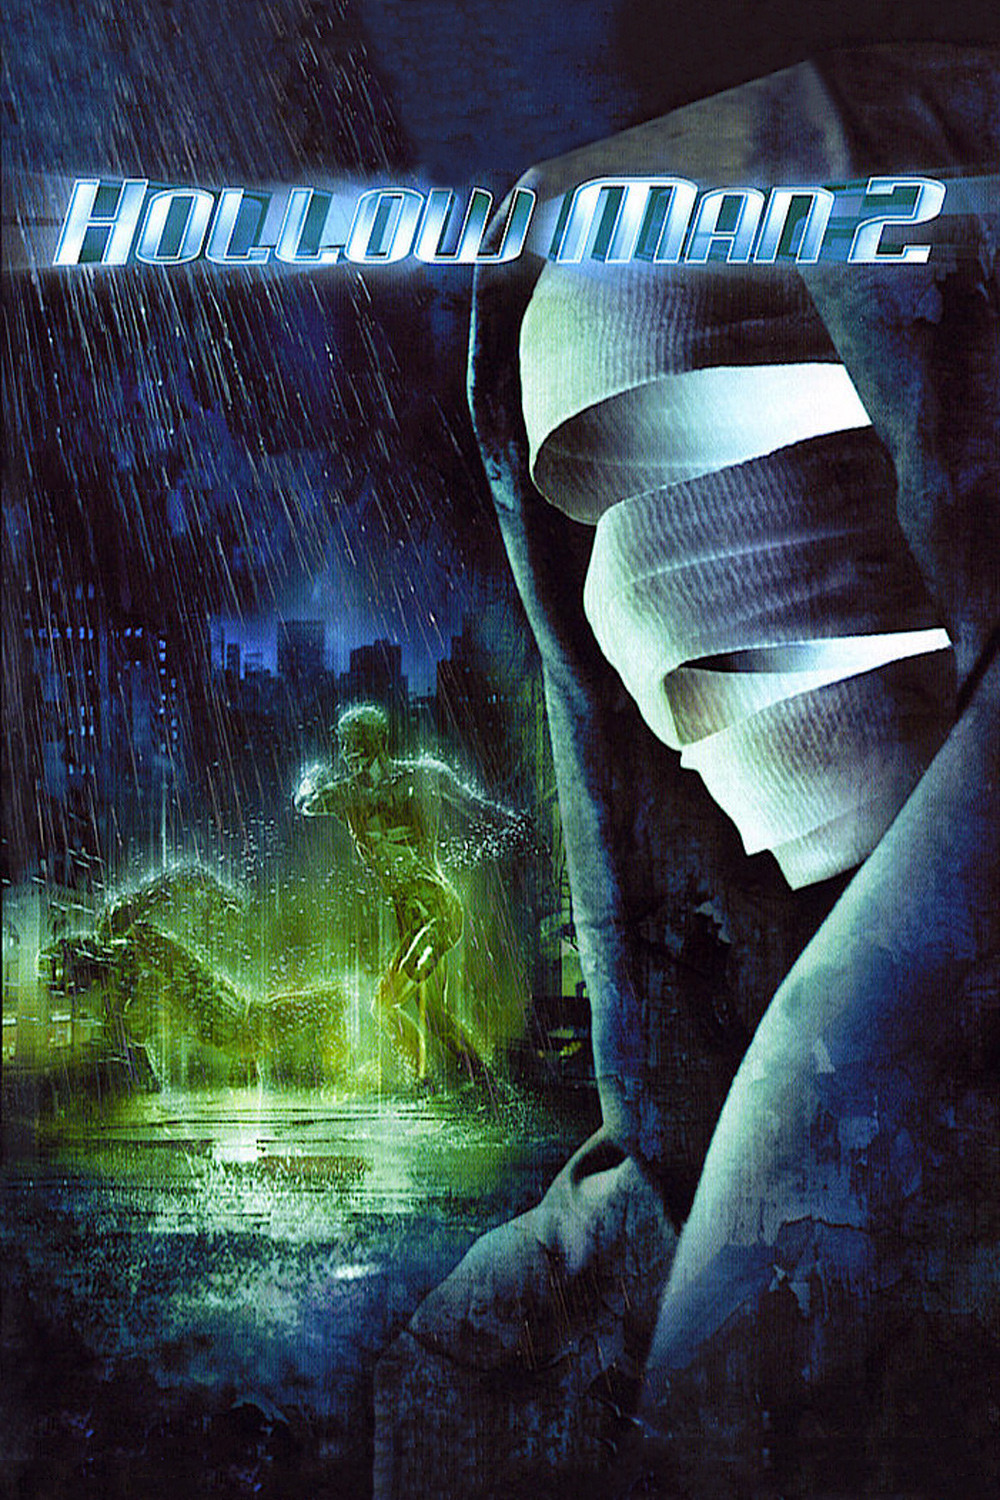 Hollow-Man-II-2006-Hindi-Dubbed-Movie-Watch-Online